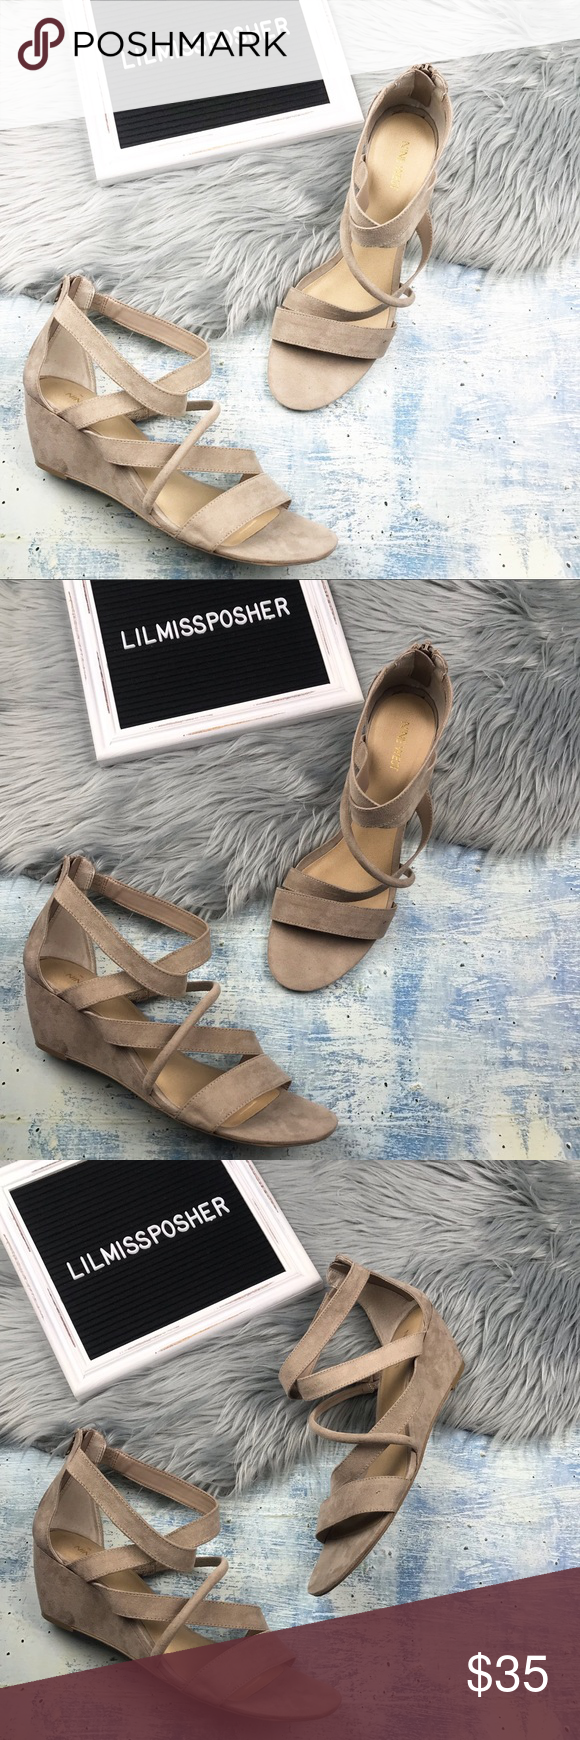 NINE WEST Women's Nude Wedge Sandals Size 12 Women's Nine West Nude low wedge sandals  Size 12 No rips or stains, overall in great pre owned condition   ▪️back zip closure   Inventory location: D Nine West Shoes Sandals #lowwedgesandals NINE WEST Women's Nude Wedge Sandals Size 12 Women's Nine West Nude low wedge sandals  Size 12 No rips or stains, overall in great pre owned condition   ▪️back zip closure   Inventory location: D Nine West Shoes Sandals #lowwedgesandals